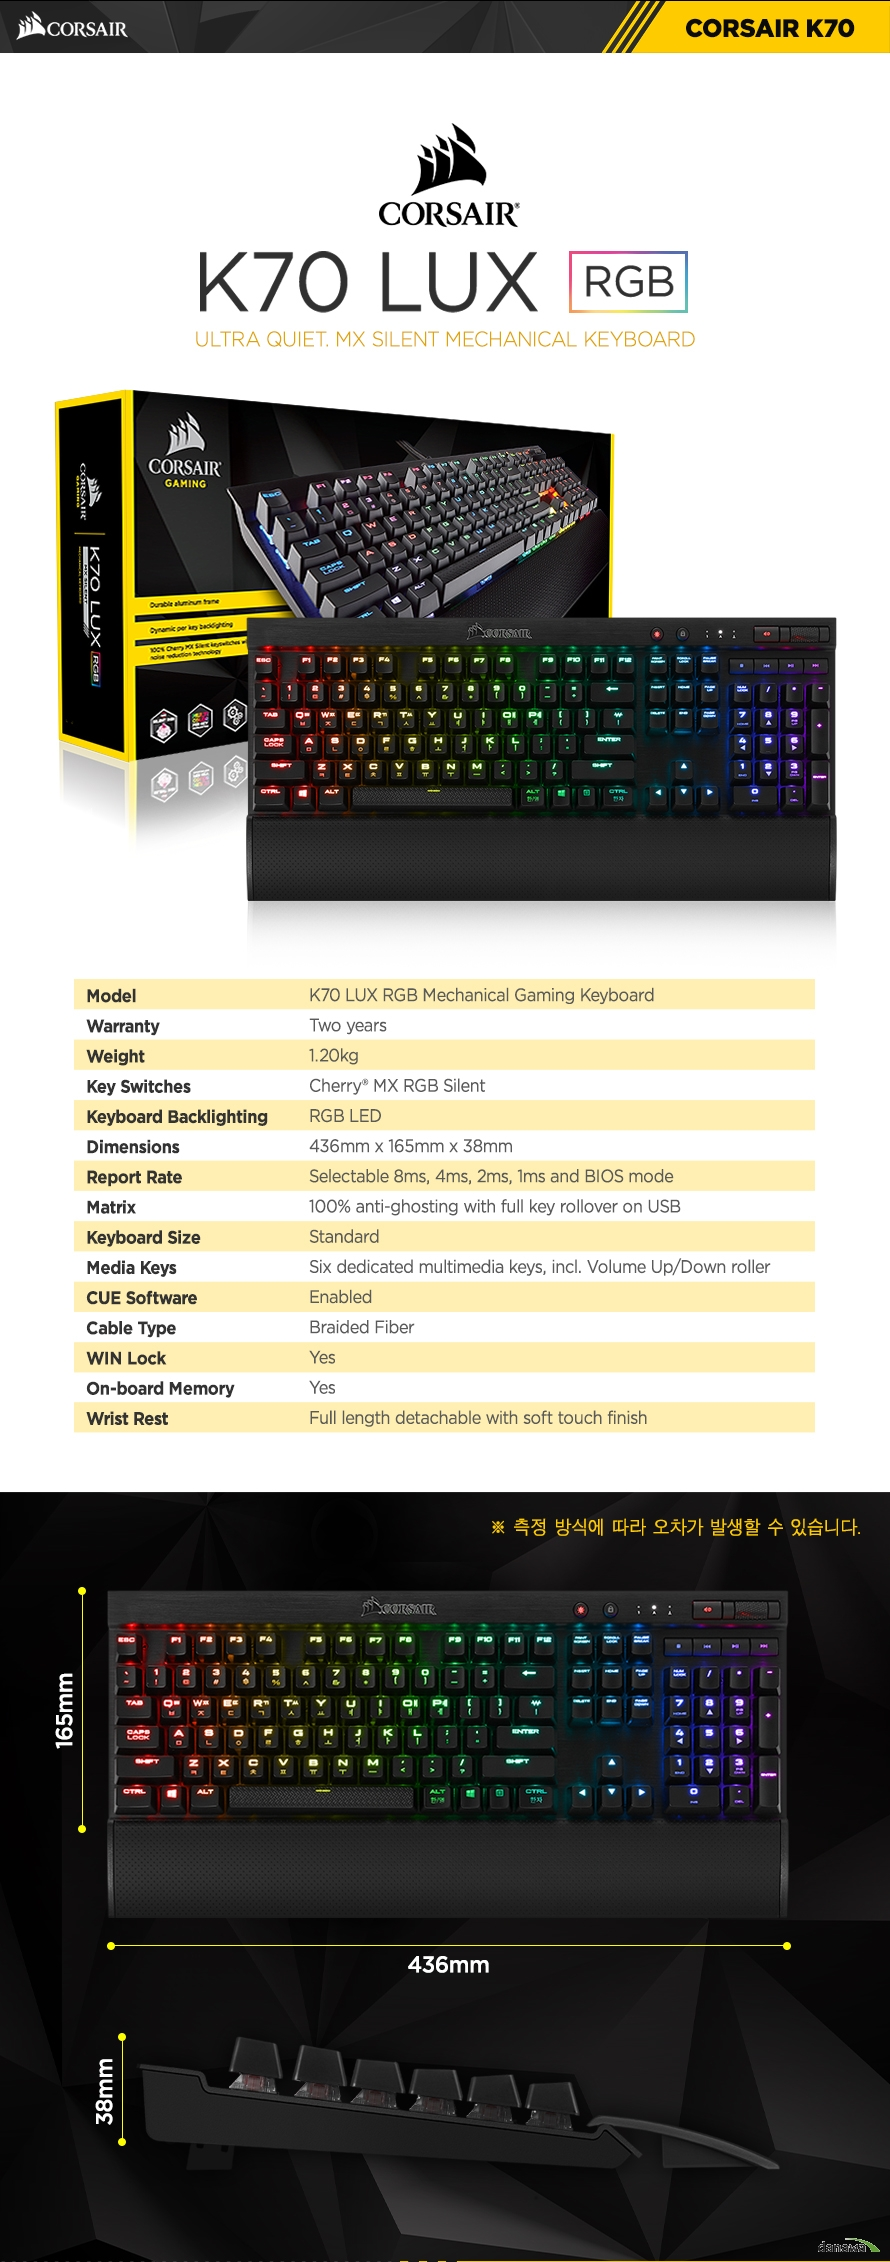 제품 사양Model	K70 LUX RGB Mechanical Gaming KeyboardWarranty	Two yearsWeight	1.20kgKey Switches	Cherry MX SILENT REDKeyboard Backlighting	RGB LEDDimensions	436mm x 165mm x 38mmReport Rate	Selectable 8ms, 4ms, 2ms, 1ms and BIOS modeMatrix	100% anti-ghosting with full key rollover on USBKeyboard Size	StandardMedia Keys	Six dedicated multimedia keys, incl. Volume Up/Down rollerCUE Software	EnabledCable Type	Braided FiberWIN Lock	YesWrist Rest	Full length detachable with soft touch finish